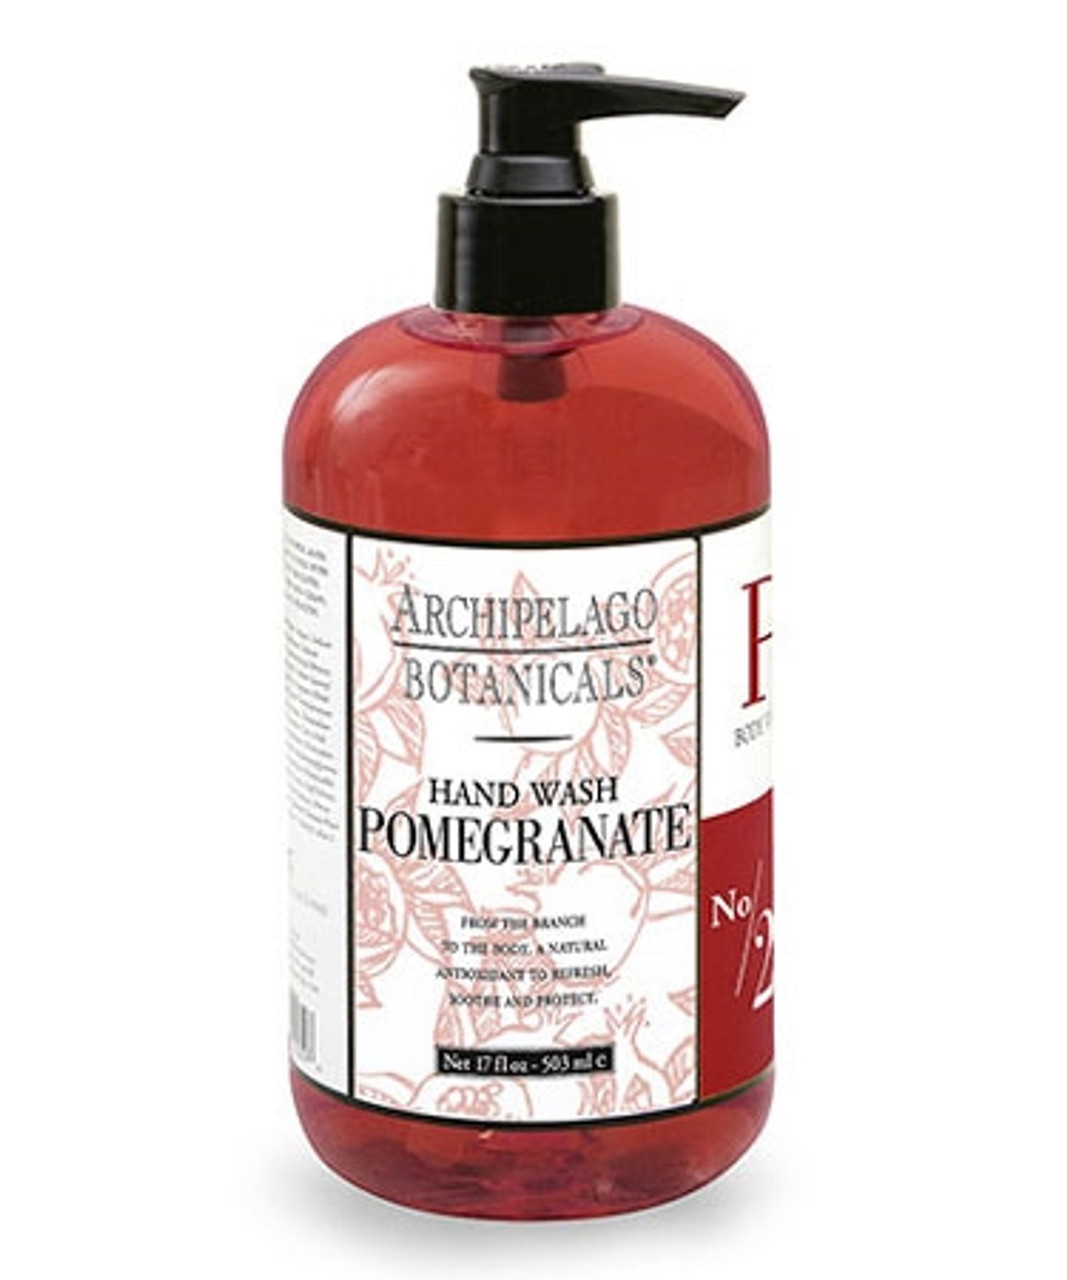 Archipelago Pomegranate Hand Wash 17 oz